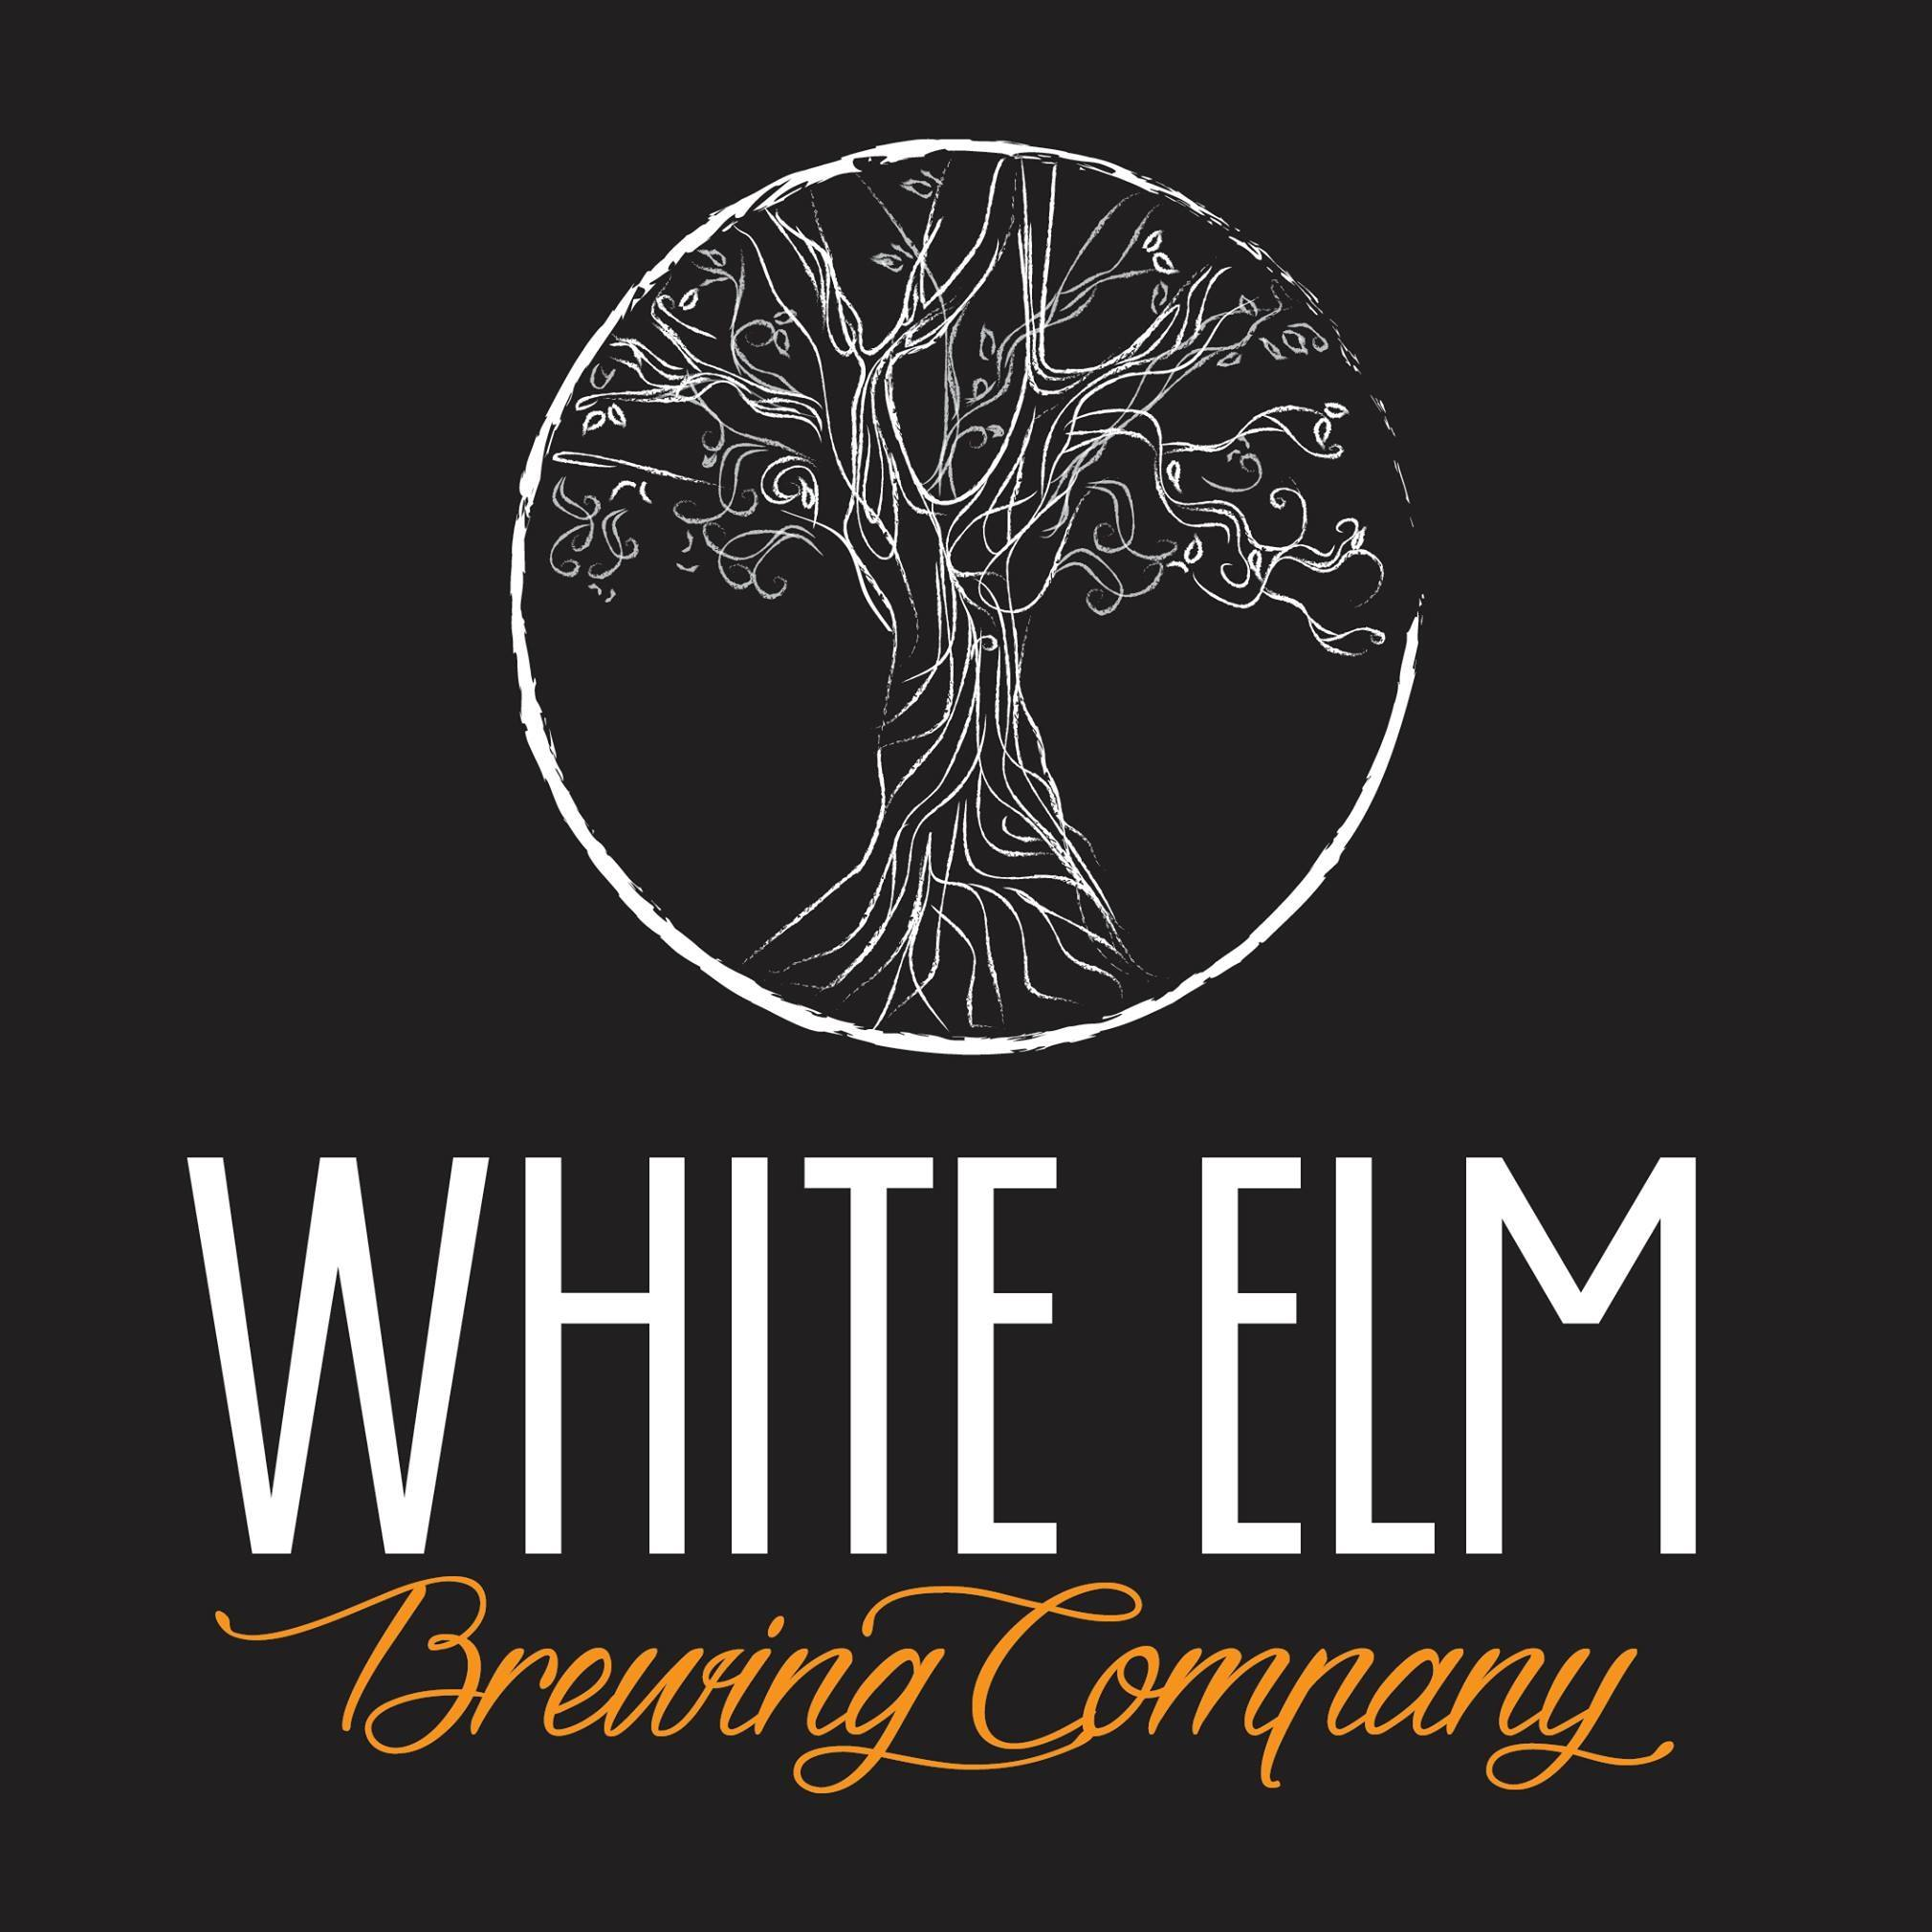 Sponsored by White Elm Brewing